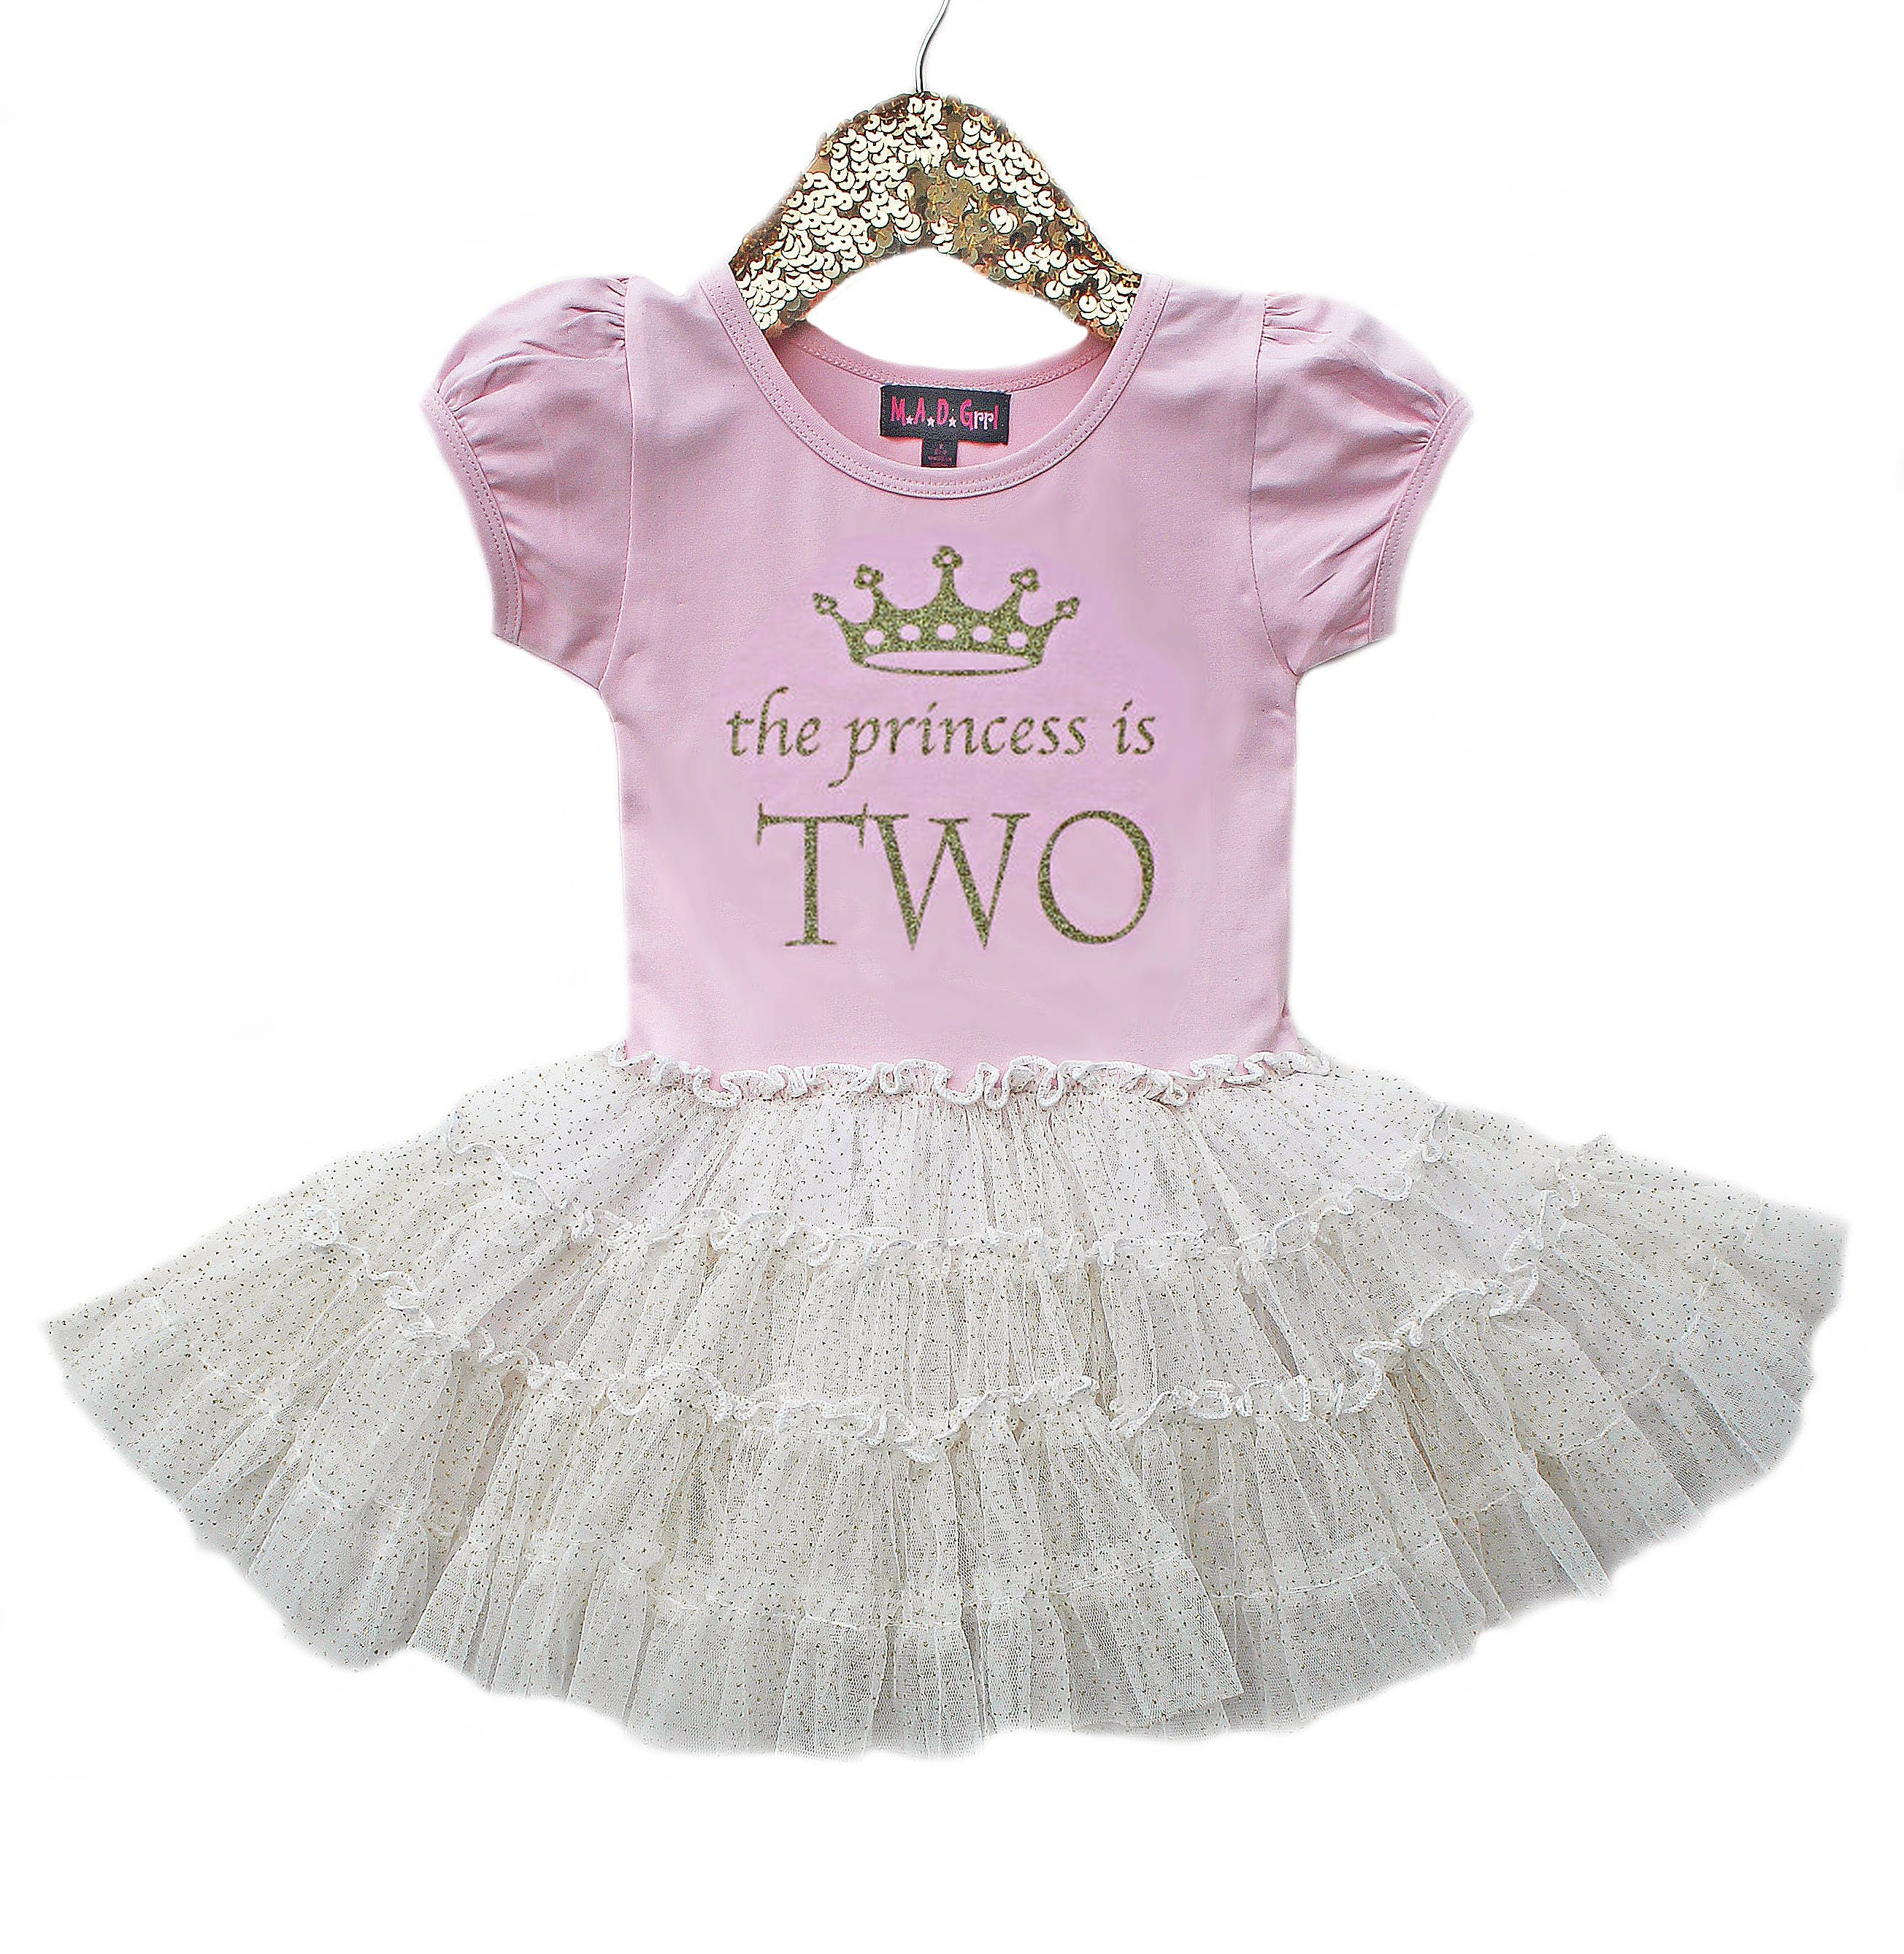 2nd Birthday Outfit Dress Pink And Gold Tutu For